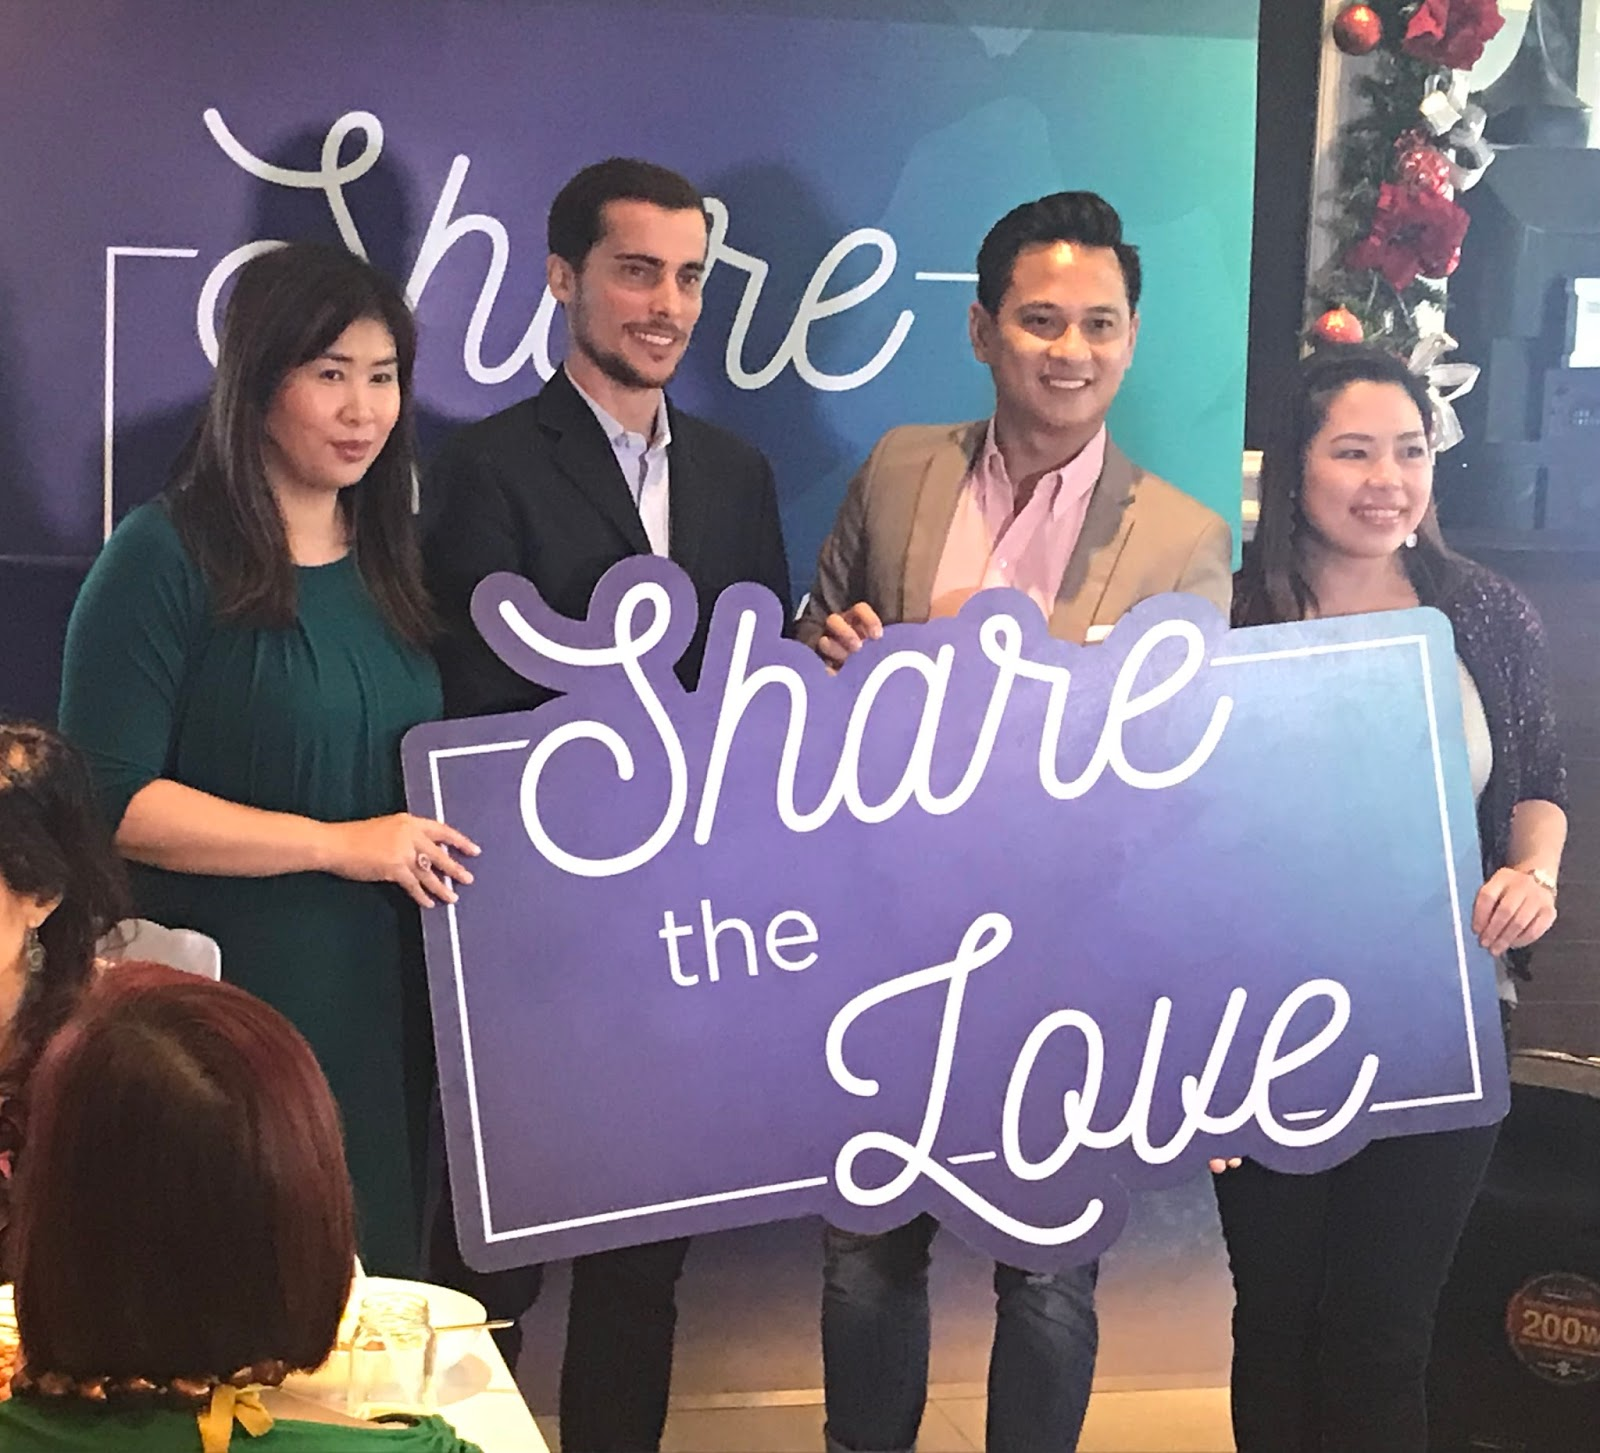 PayMaya Reveals Big Discounts, Rebates and Promos to #ShareTheLove This Holiday Season